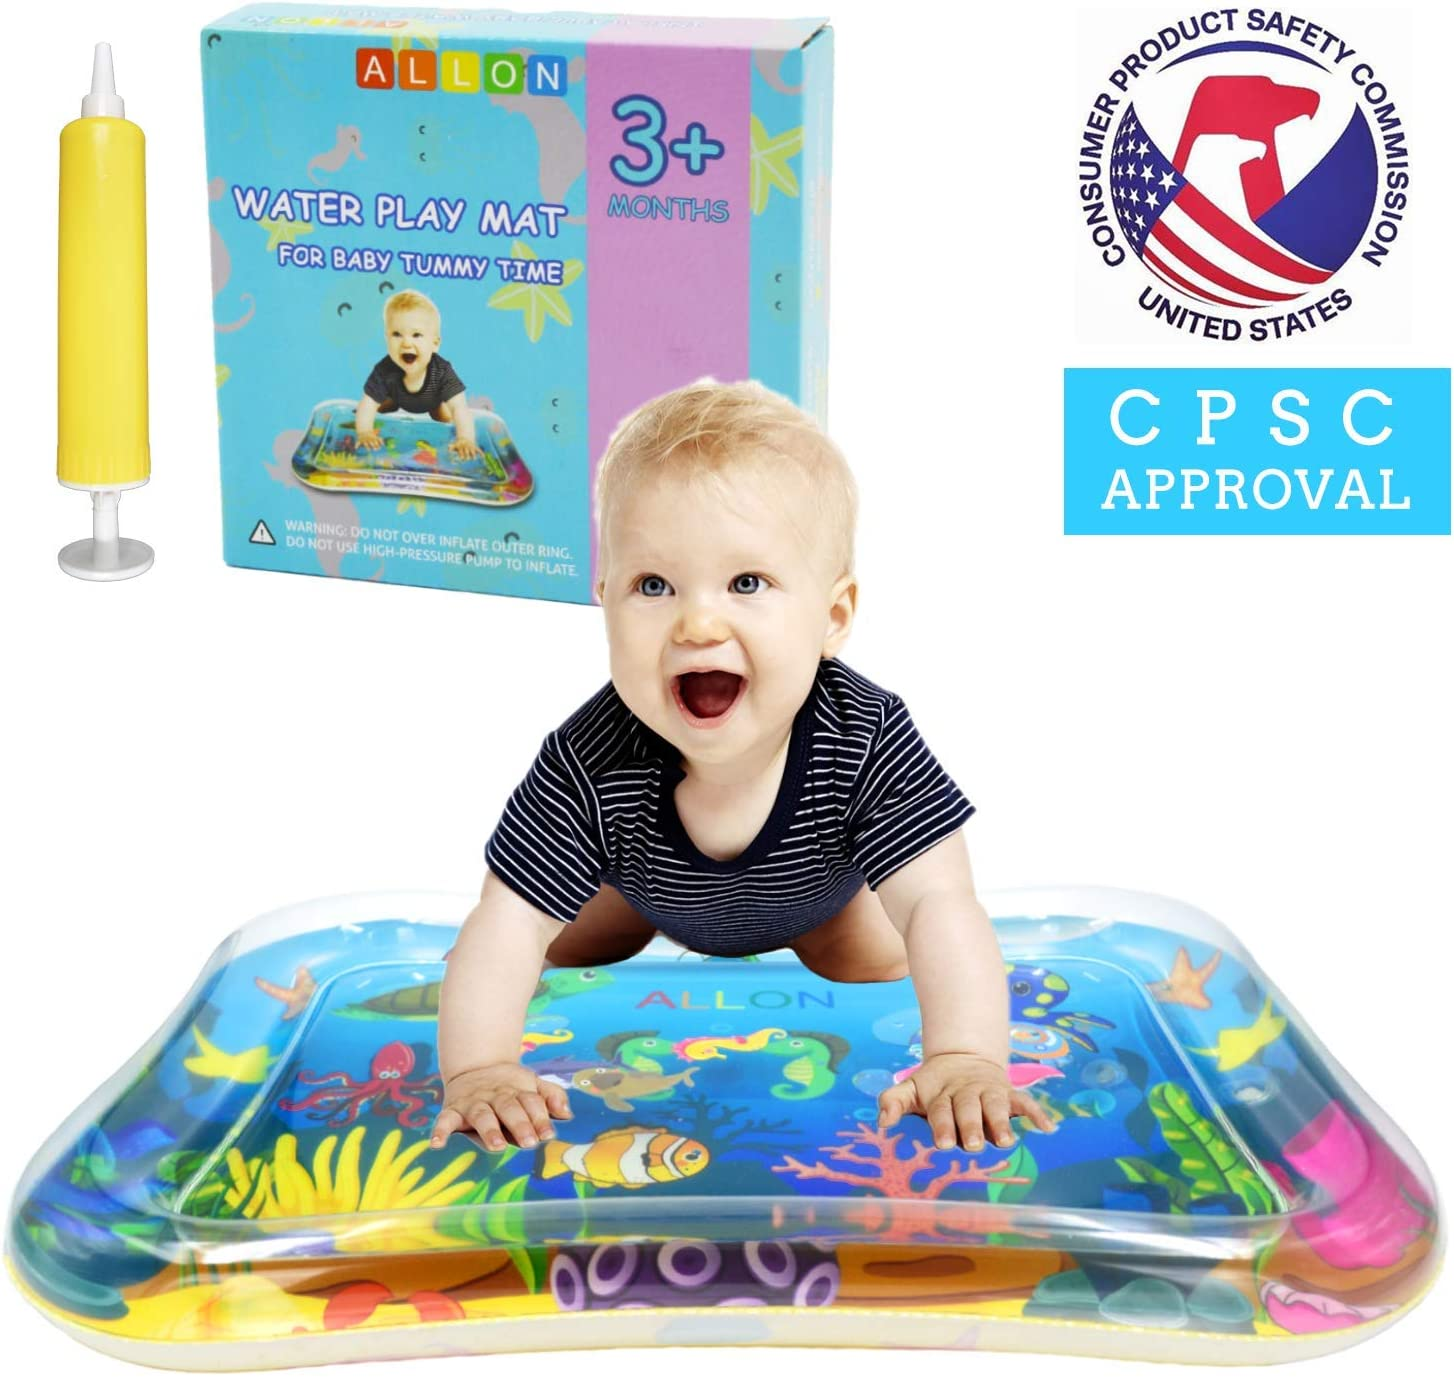 Best Activity Centers Baby Sensory Toys for 3 6 9 Months Leakproof Inflatable Play Mats for Infants /& Toddlers ALLON Tummy Time Baby Water Play Mat